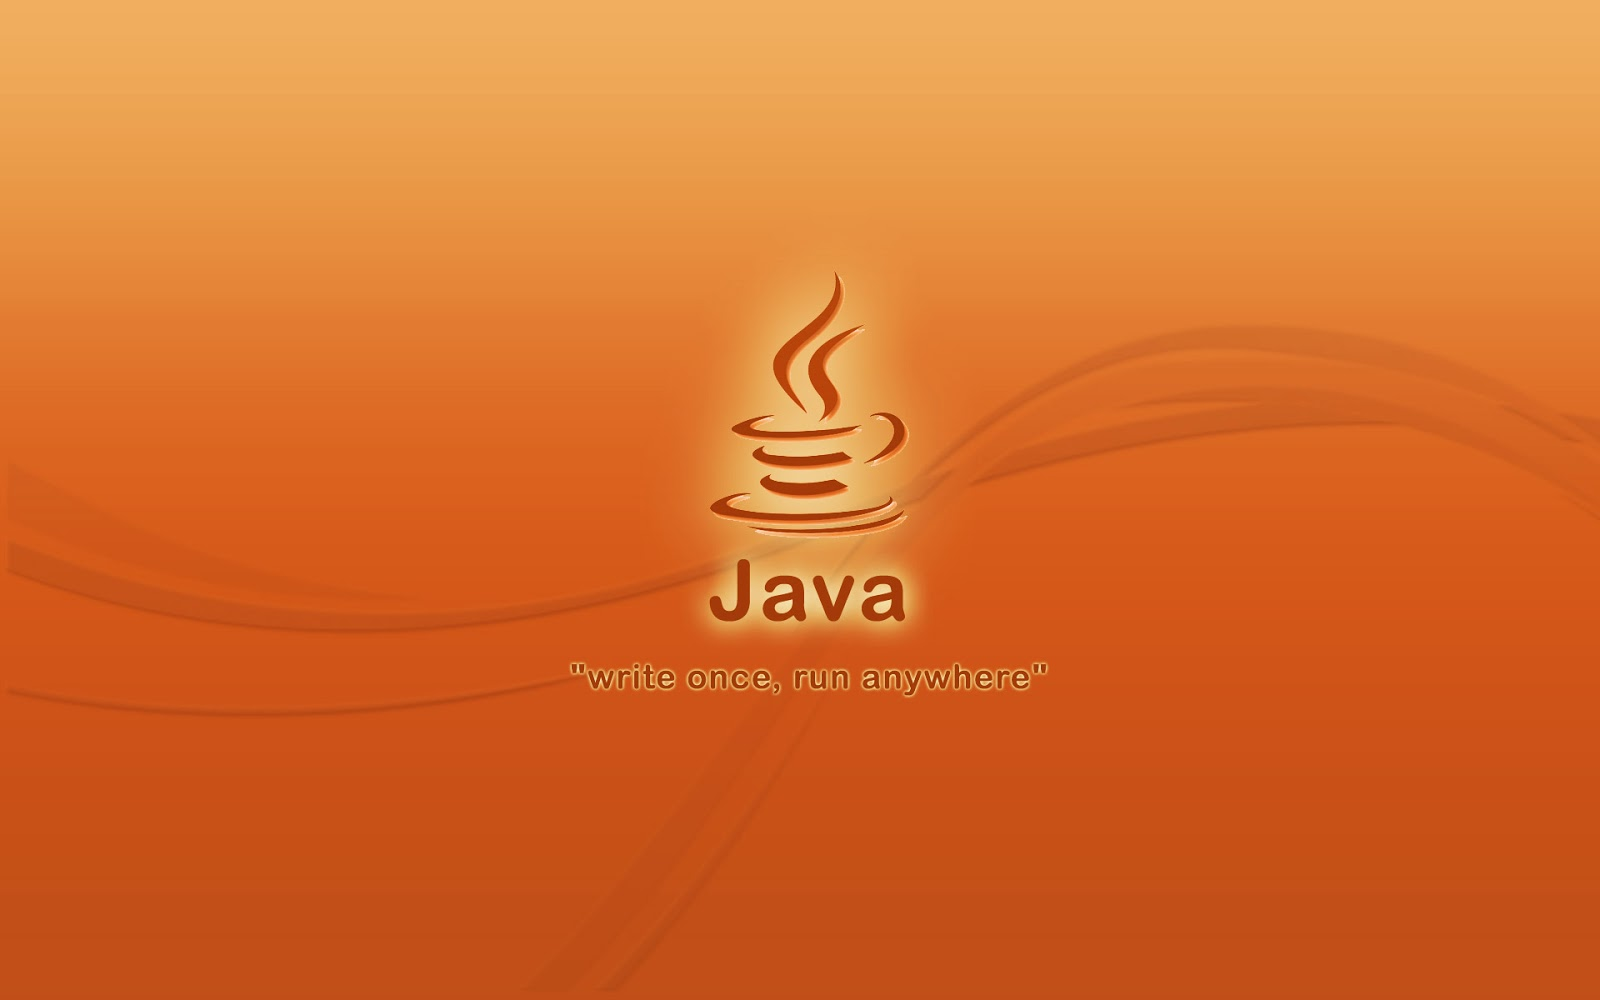 java project center in chennai